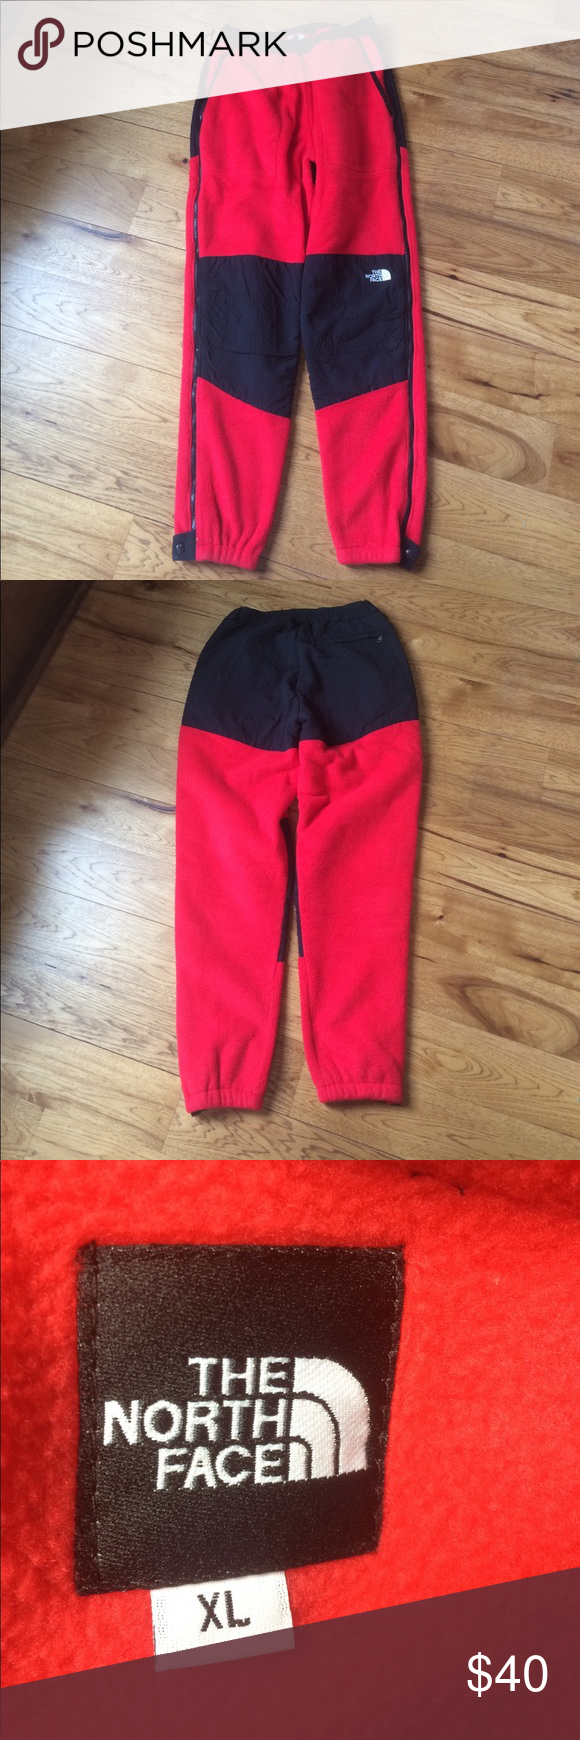 Men's North Face Fleece Pants XL Used but good condition. Great for skiing/camping. Size XL. The North Face Pants